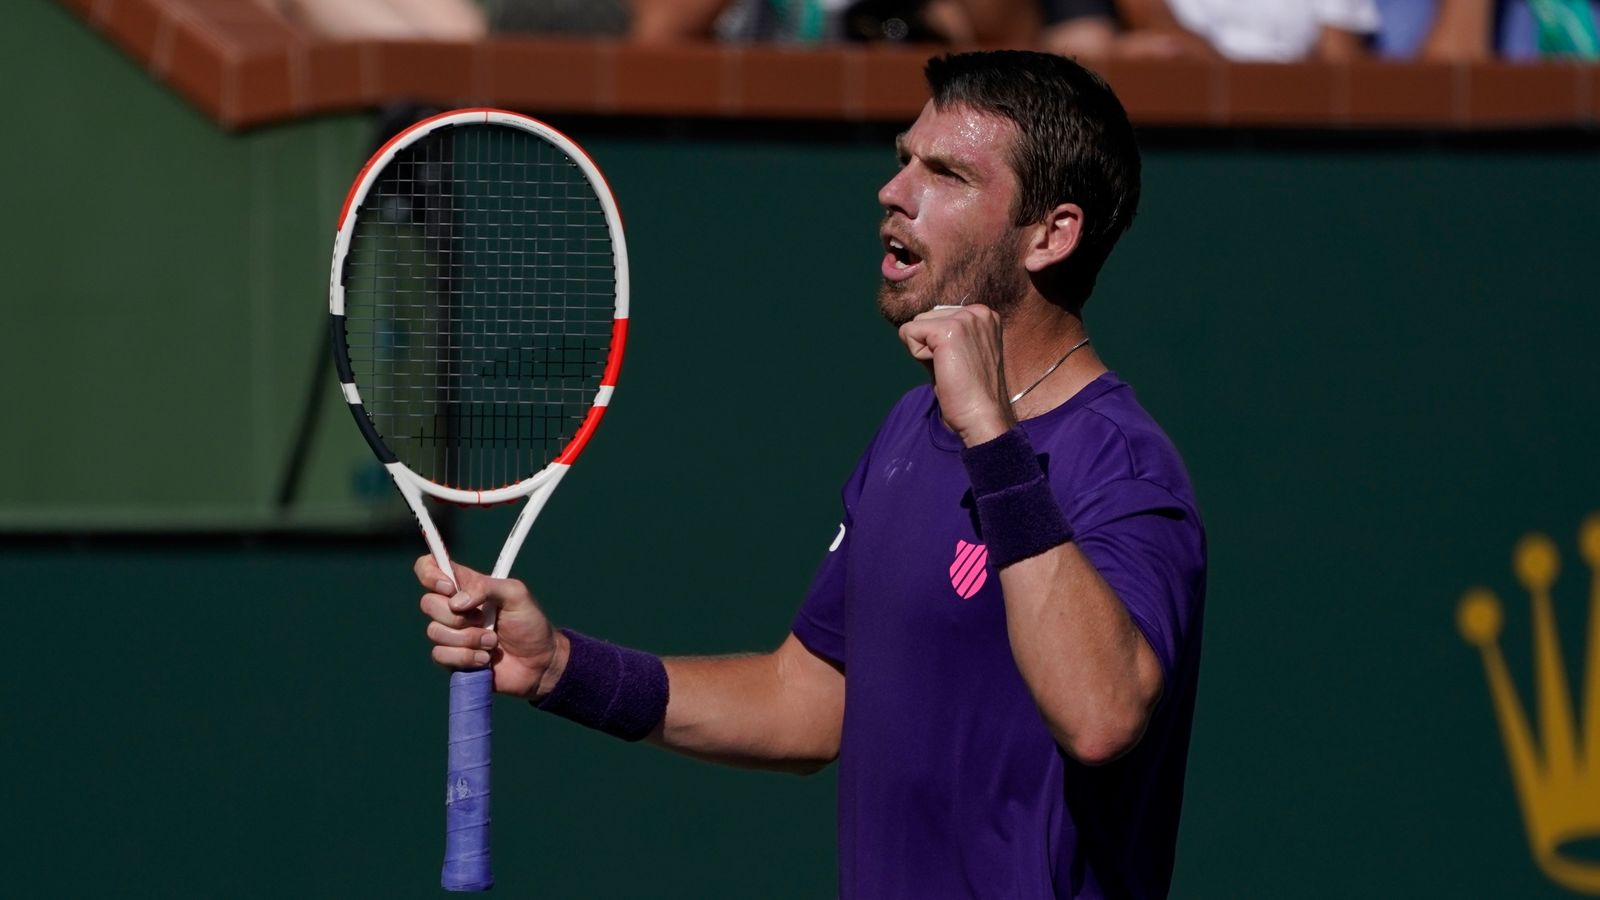 Cameron Norrie beats Grigor Dimitrov in straight sets to reach Indian Wells final